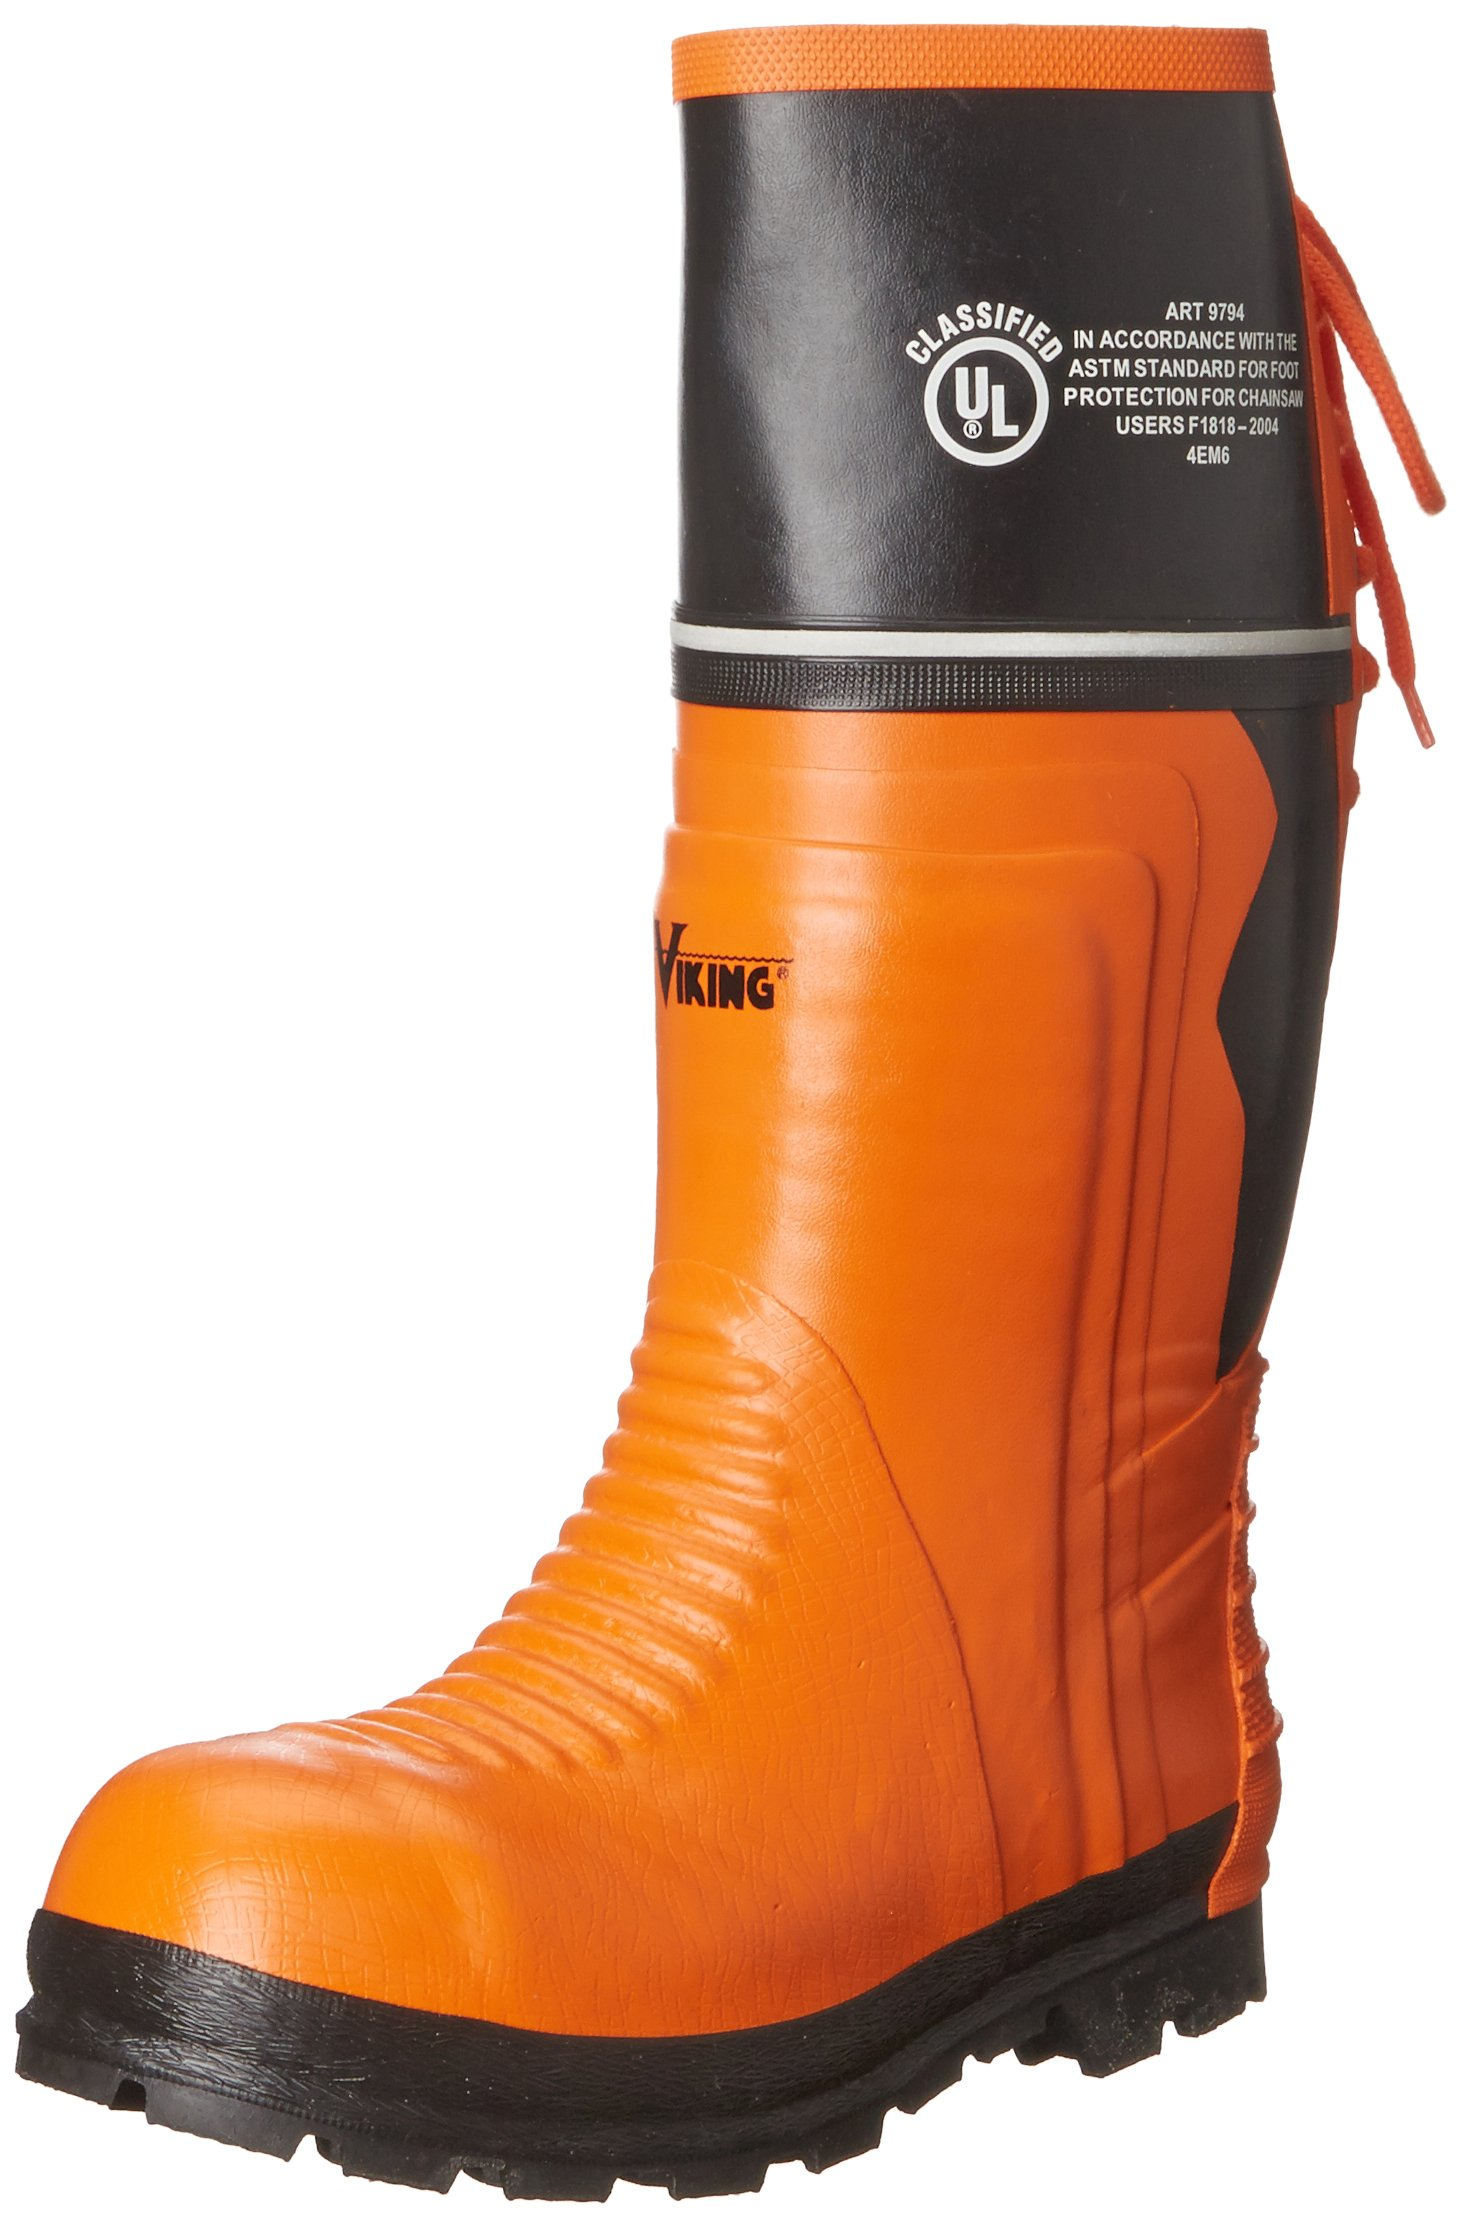 Viking Footwear Class 2 Chainsaw Boot,Orange/Black,10 M US